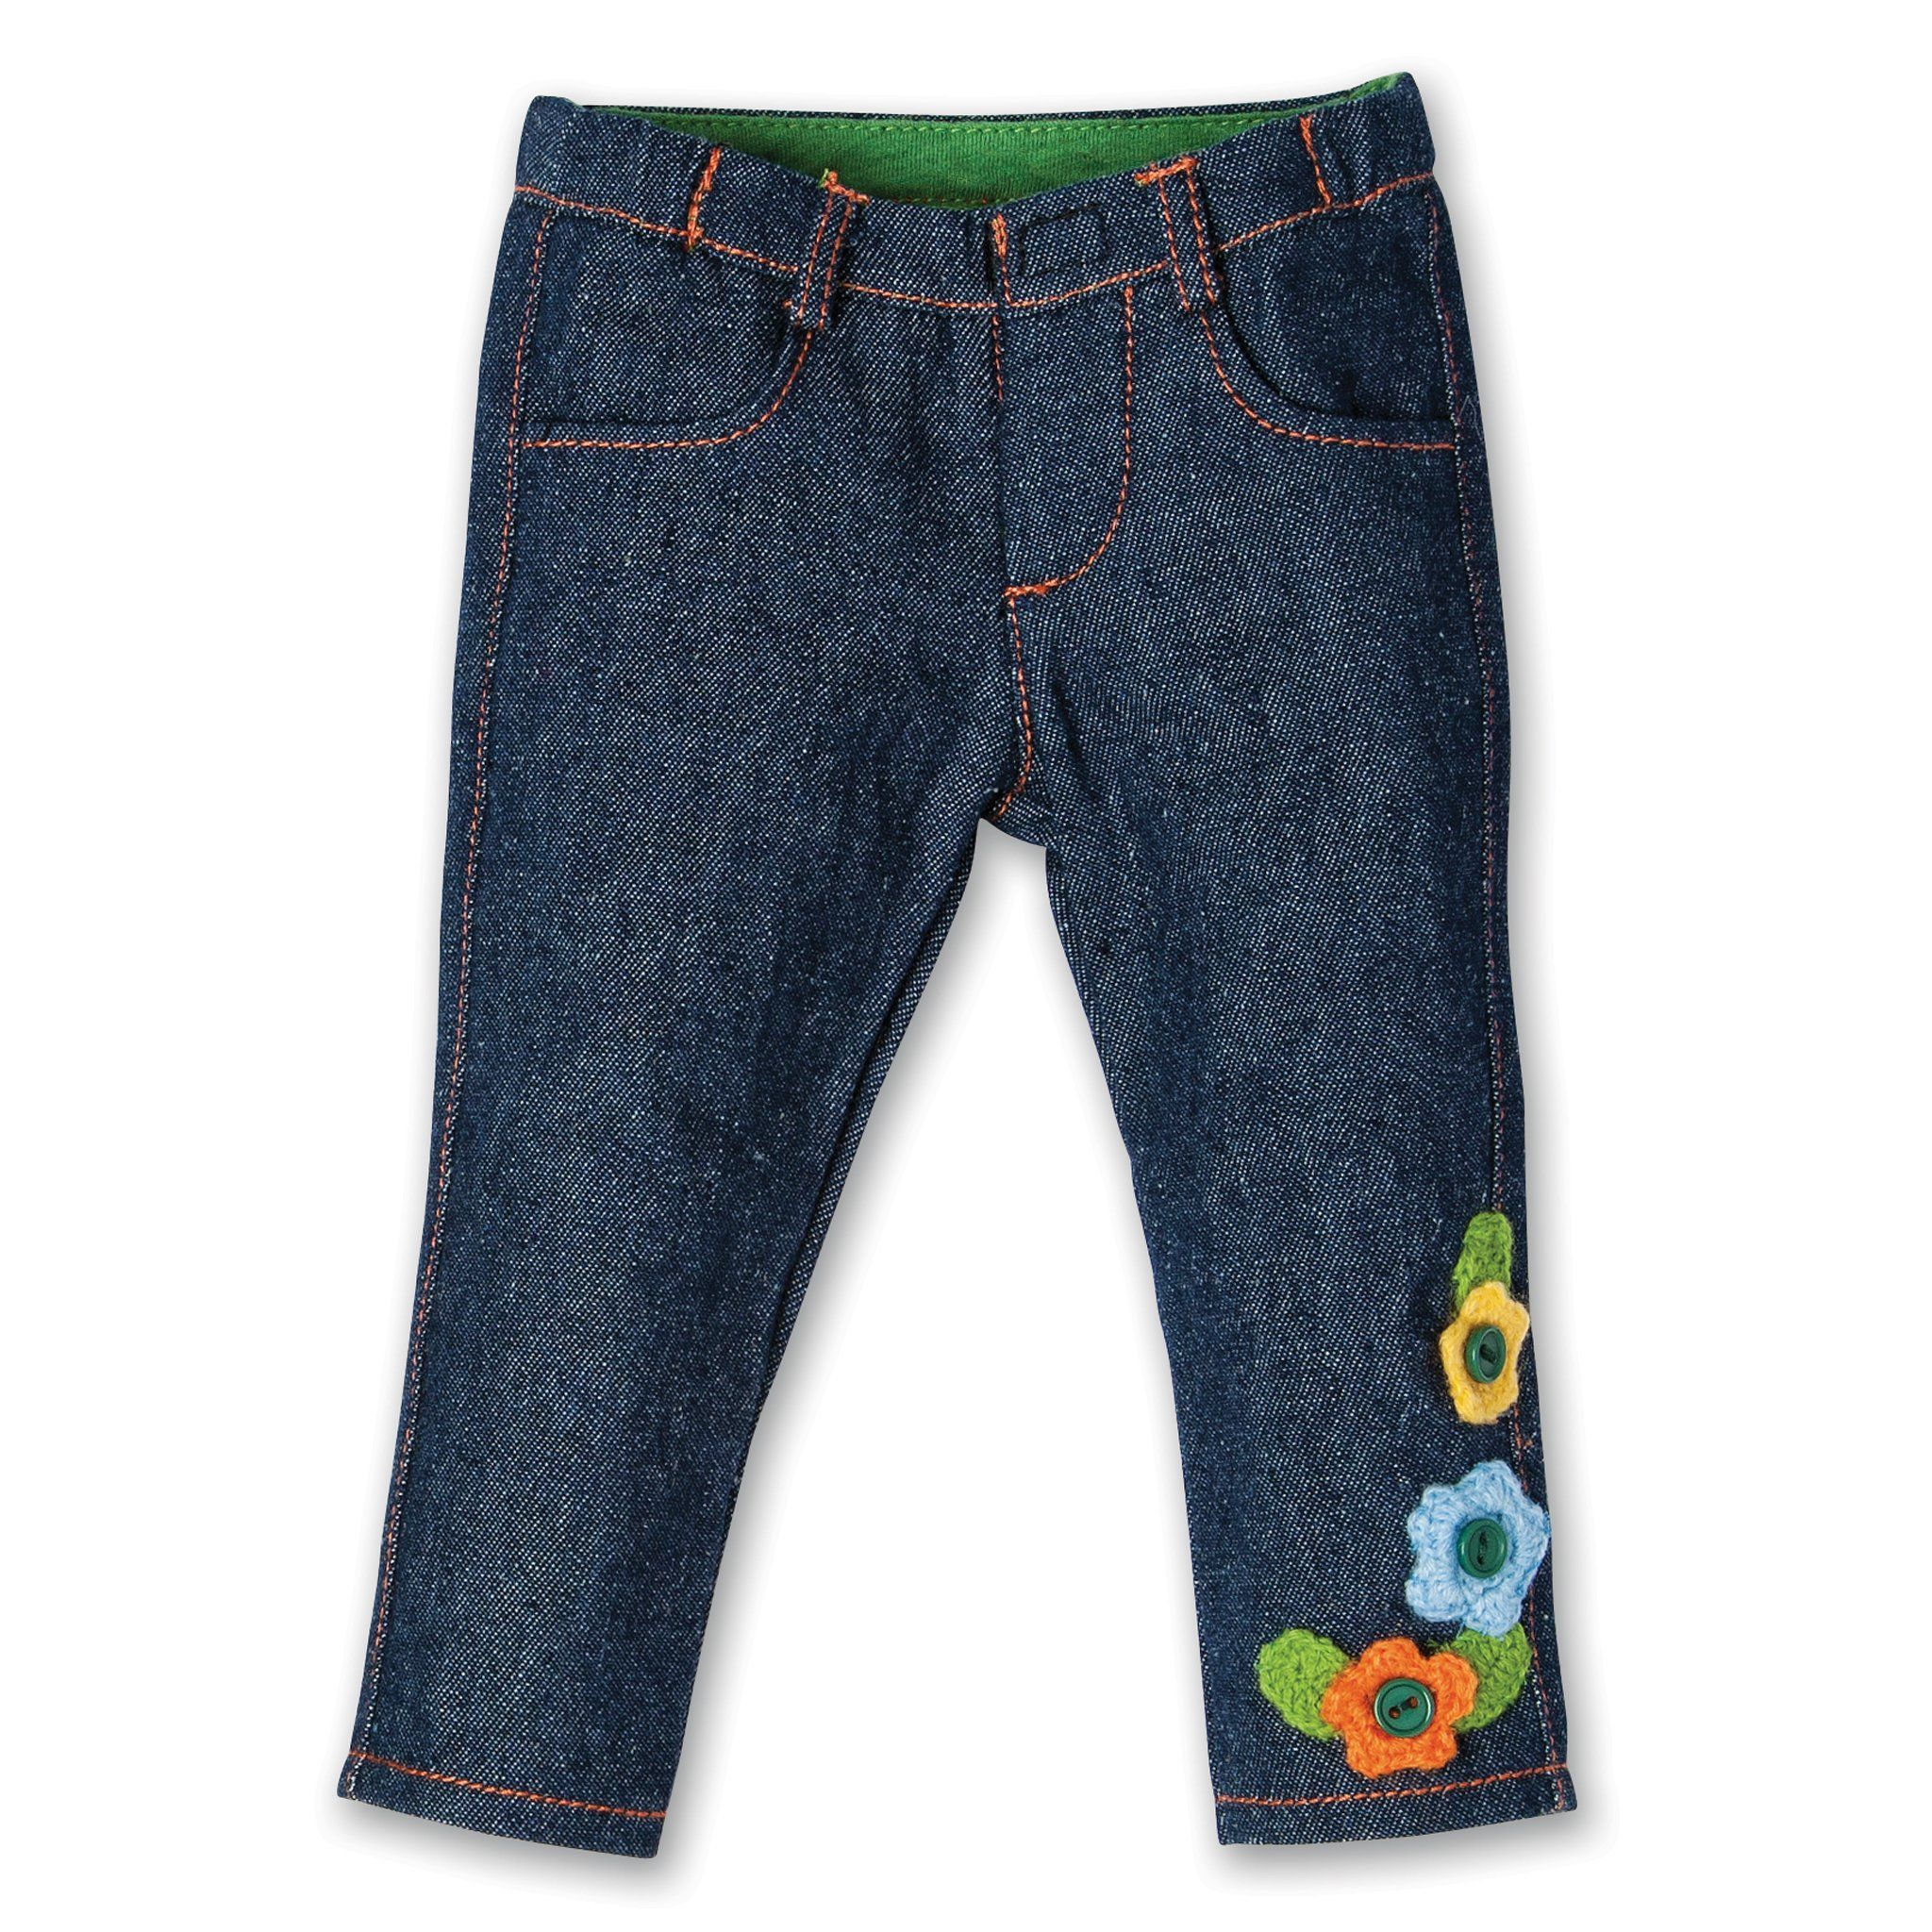 Jeans with crocheted flowers fits all 18 inch dolls.